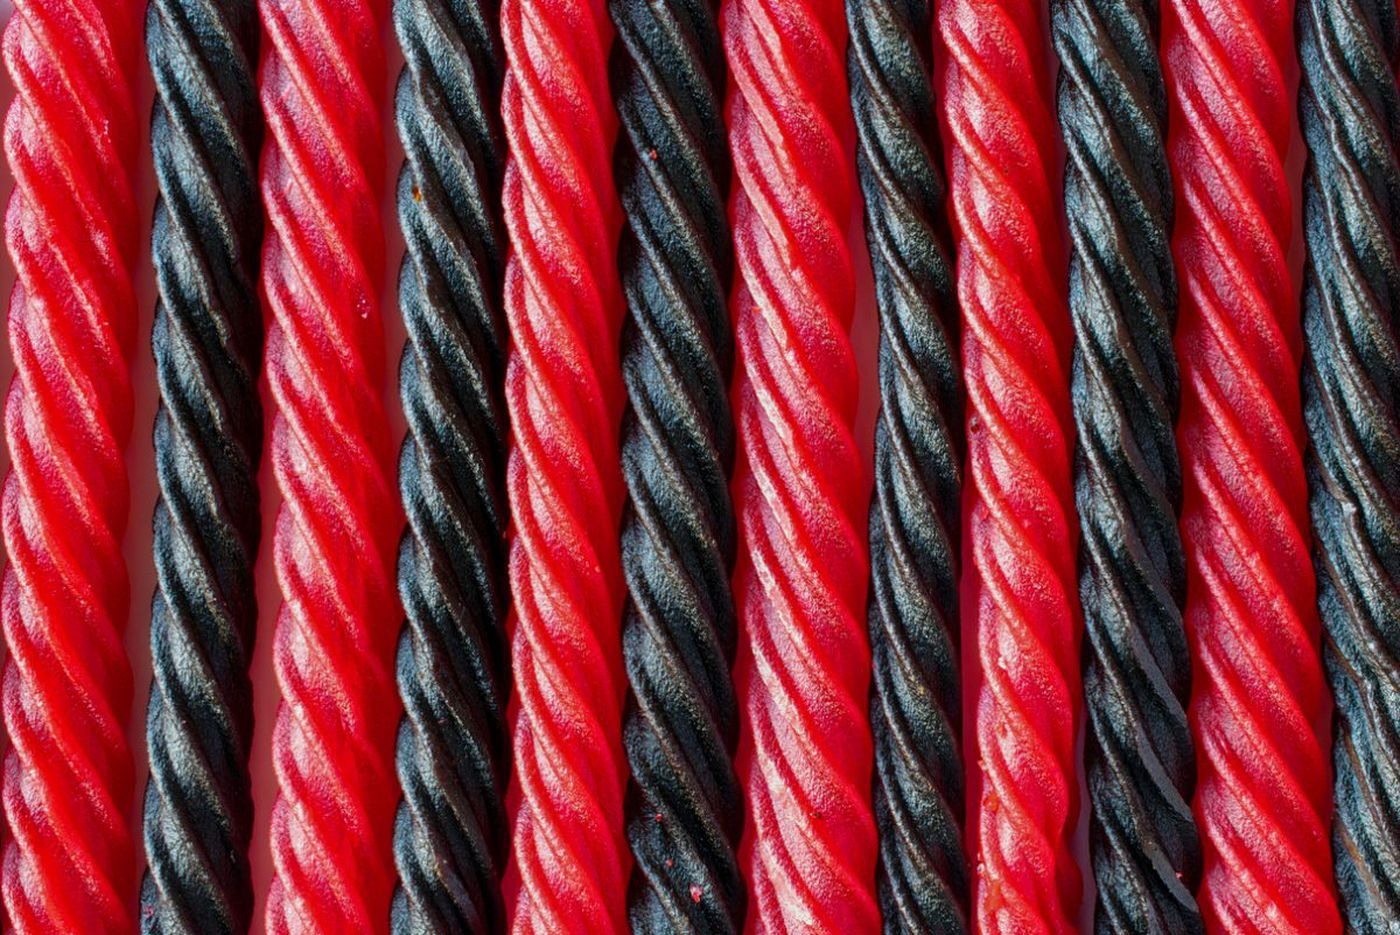 Black licorice may be a tricky treat for your heart, FDA advises